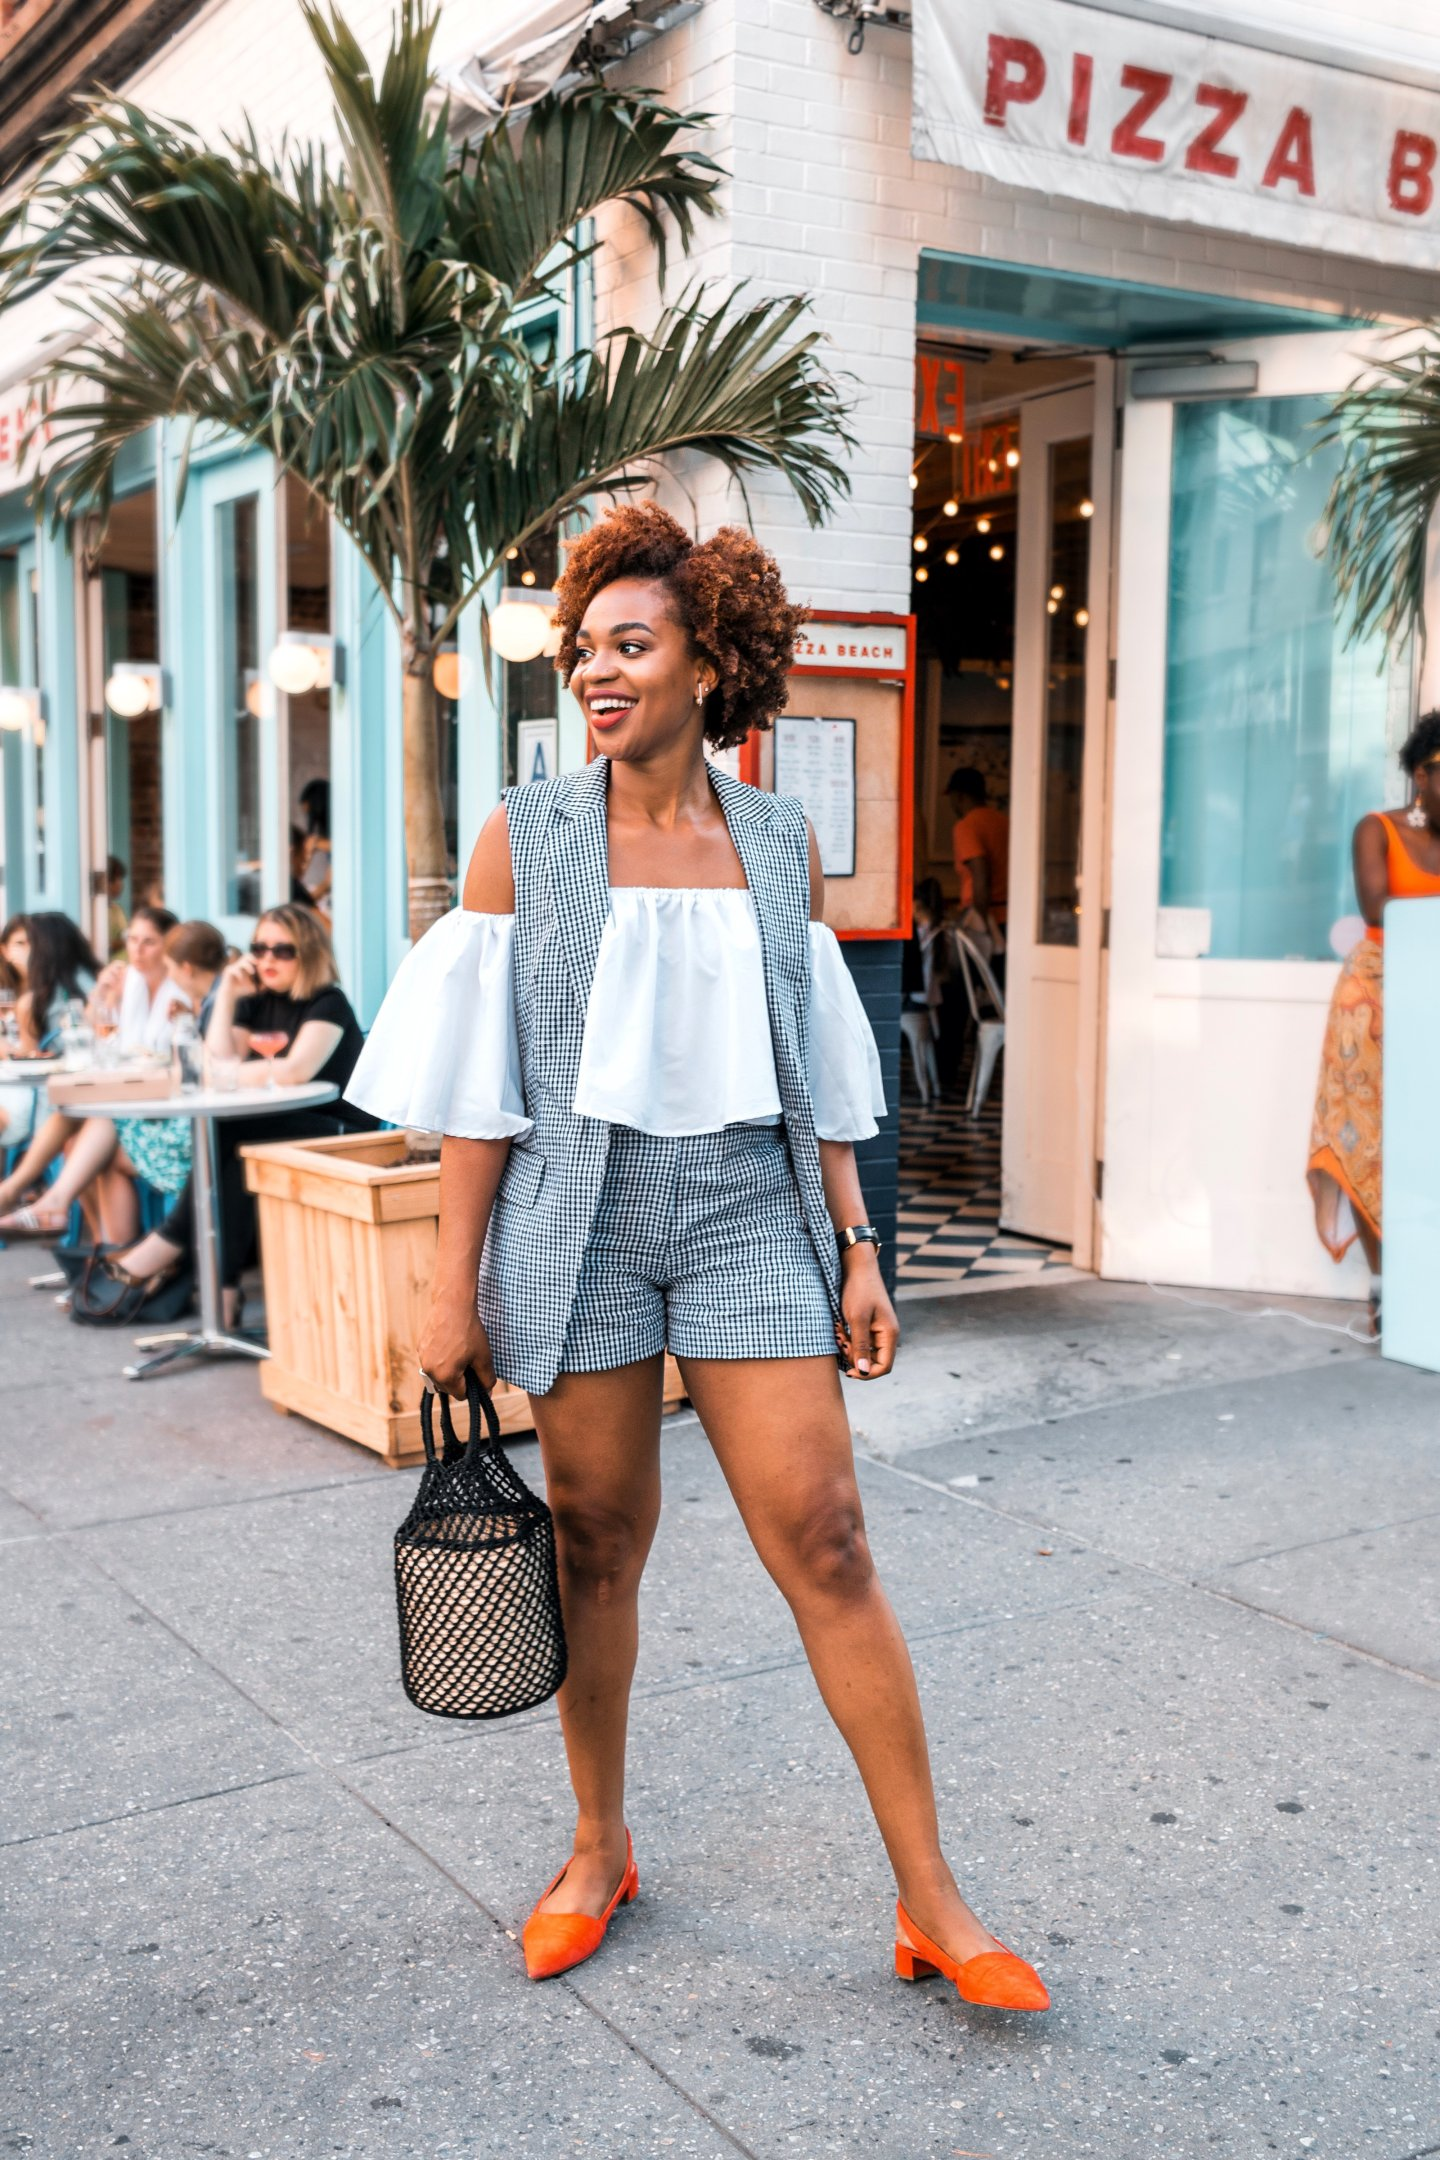 Michael Kors Linen Gingham Shorts and Vest | Ijeoma Kola